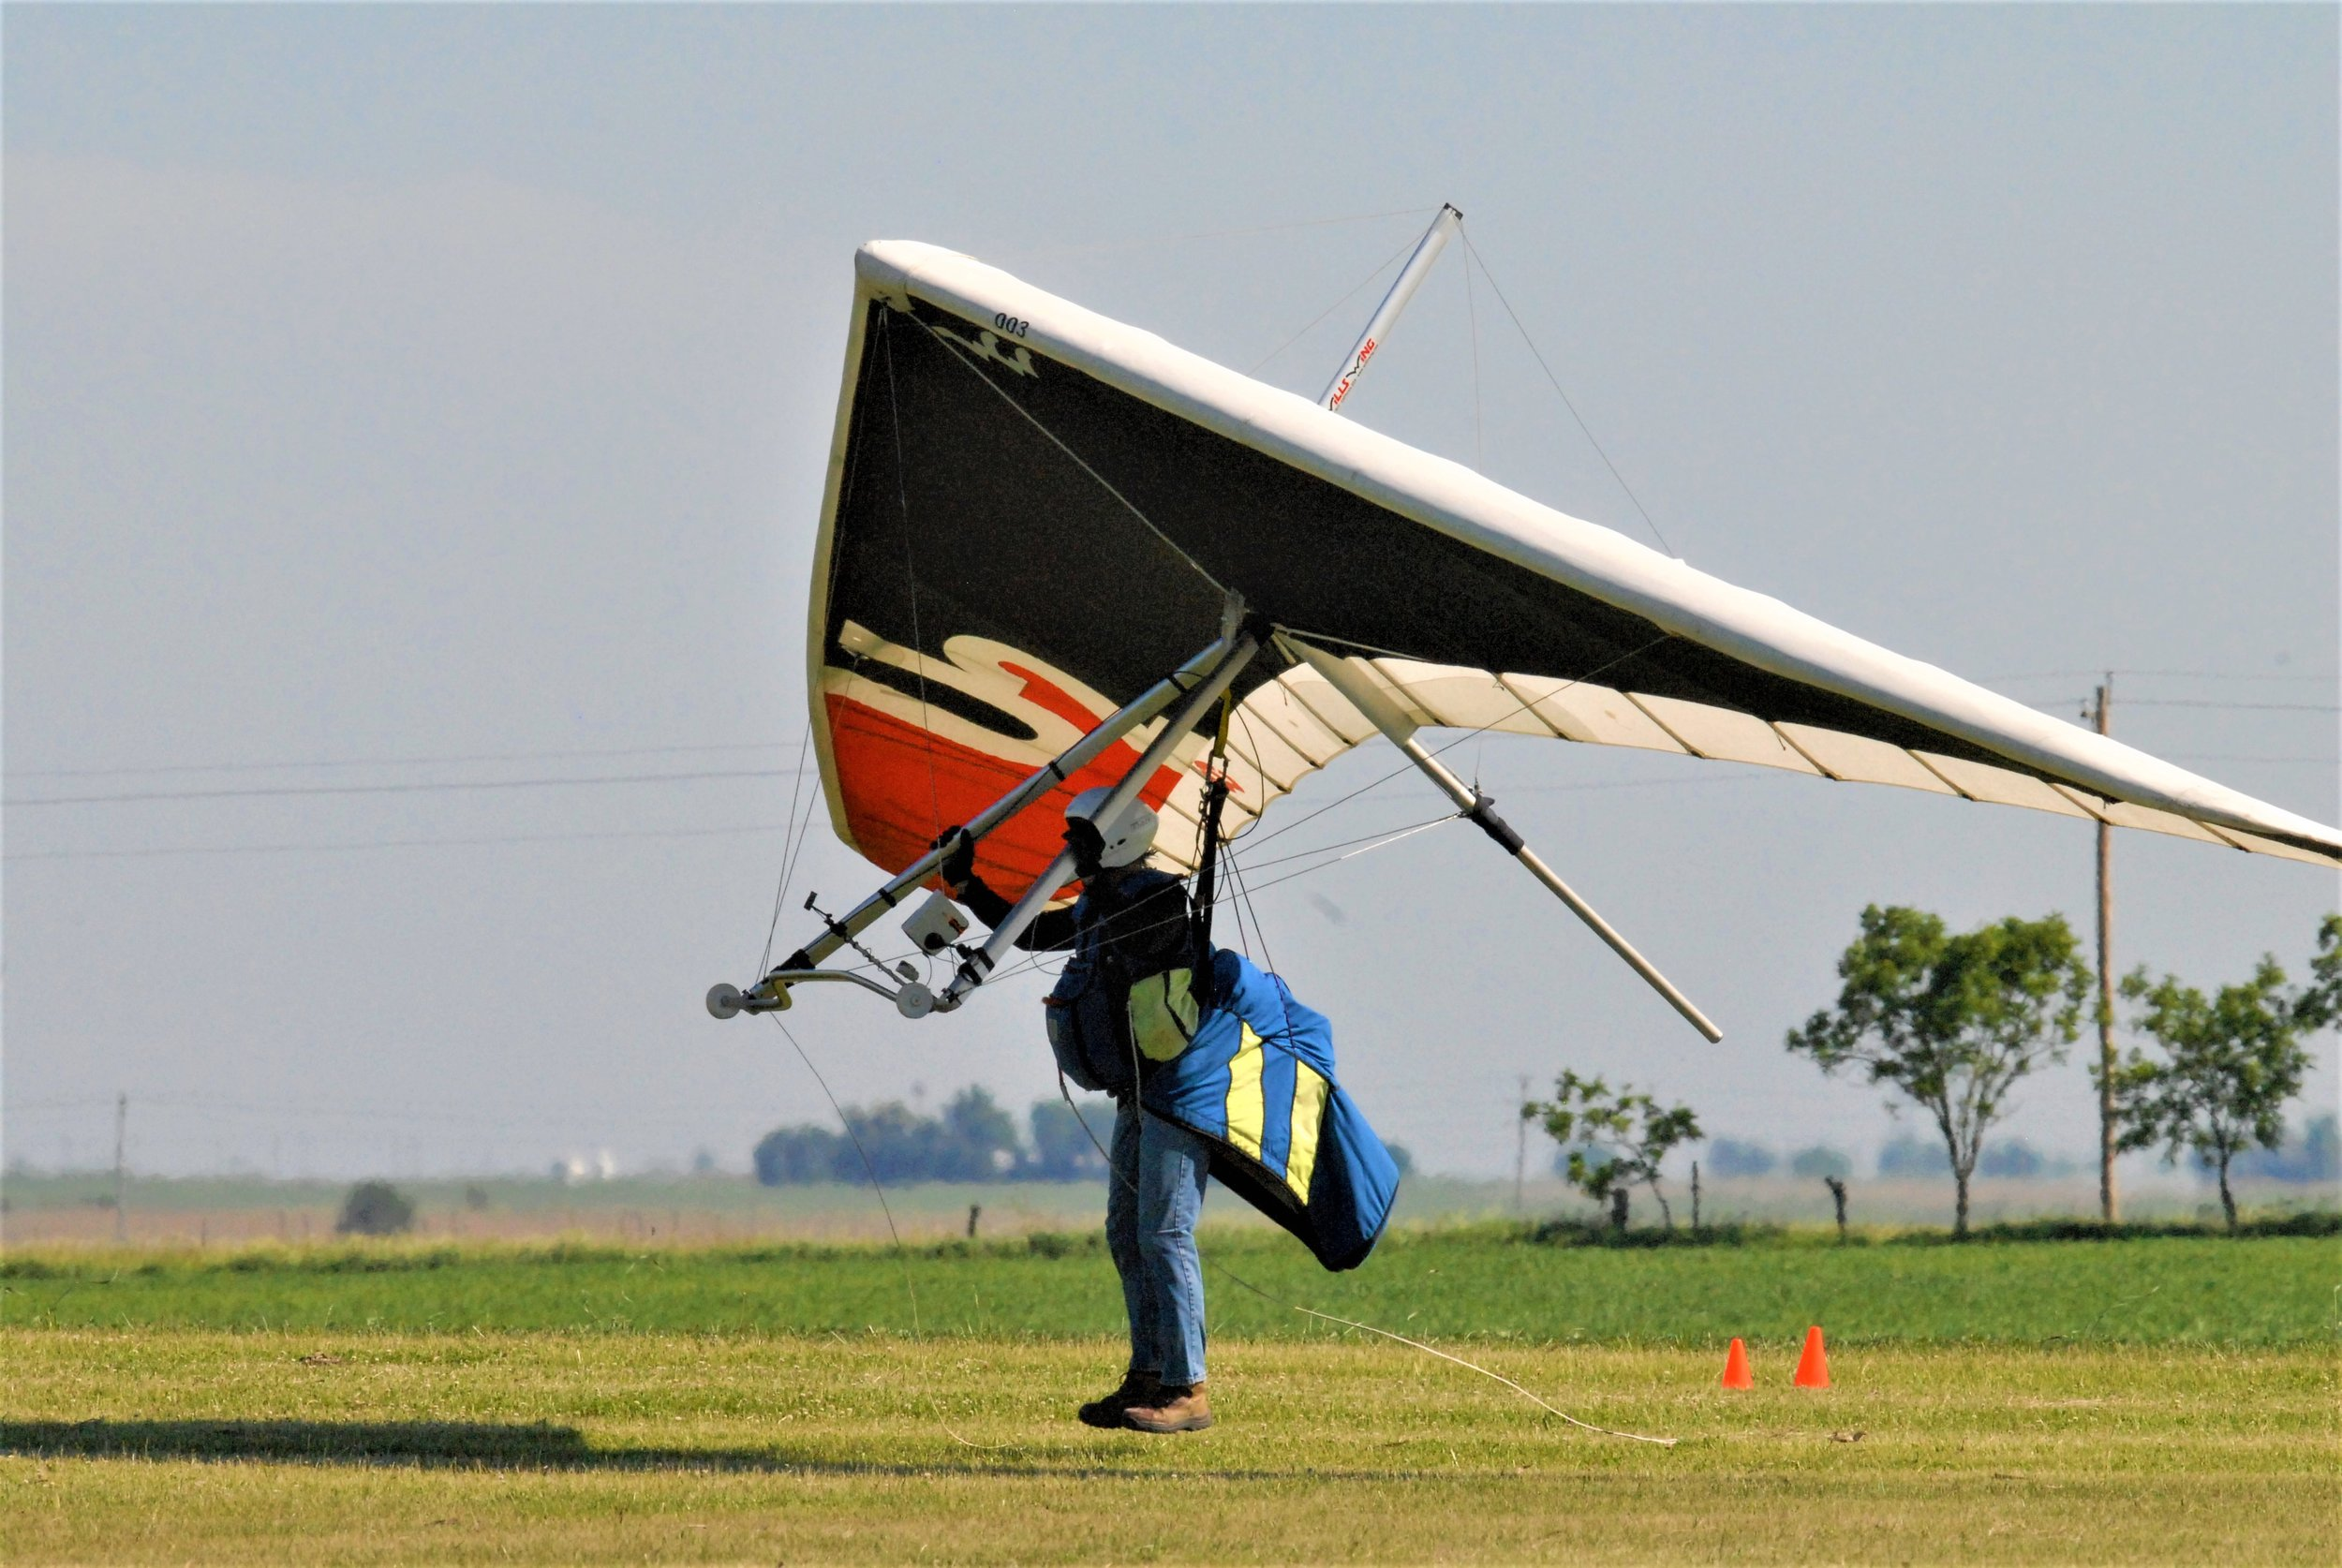 LEARN TO FLY - Do you have what it takes to become a solo pilot? Comprehensive flight training is available.